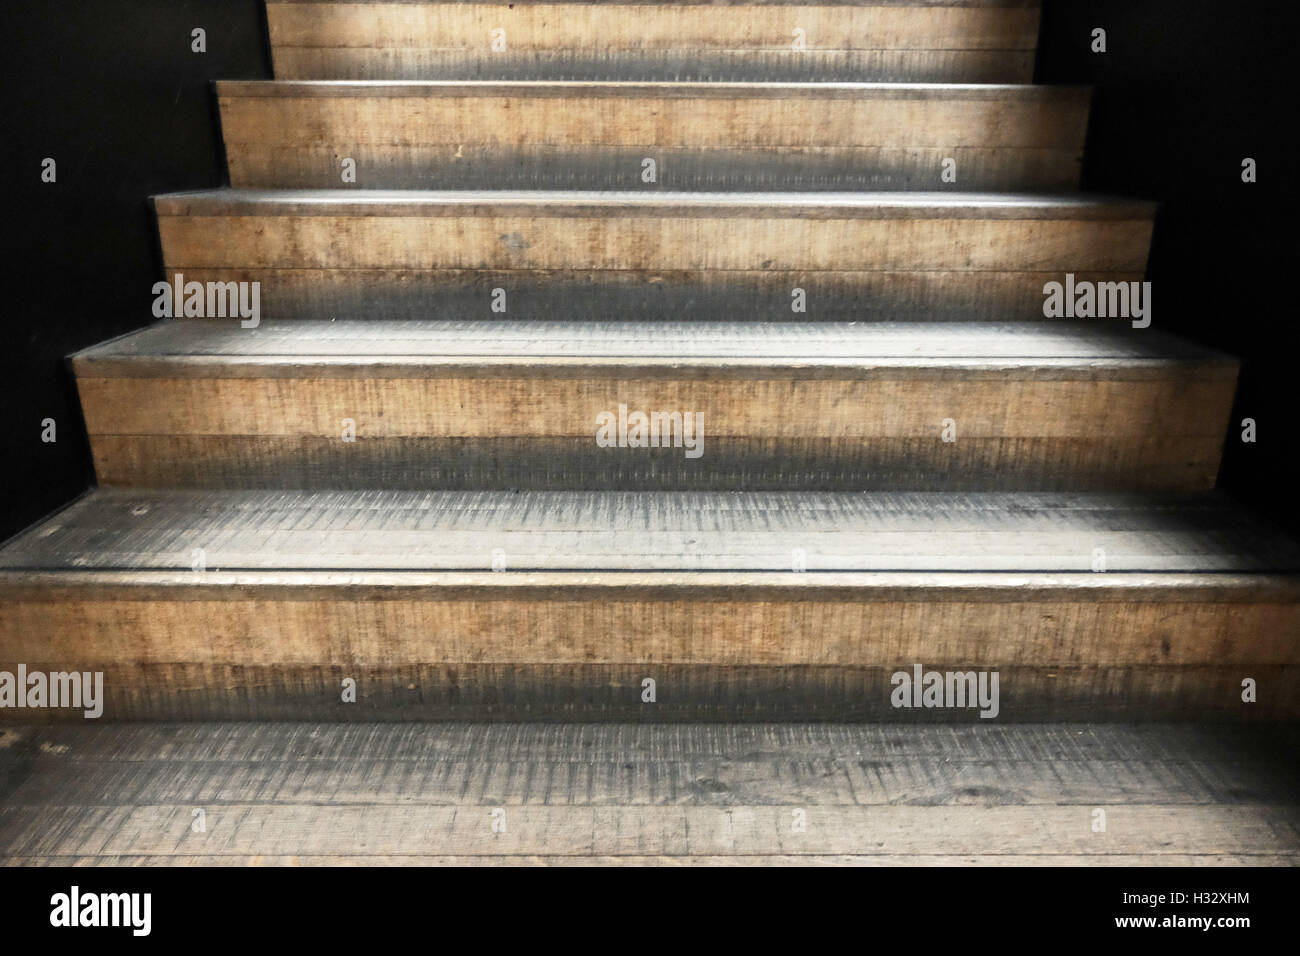 Set of light brown / beige concrete steps in a staircase leading upwards. - Stock Image